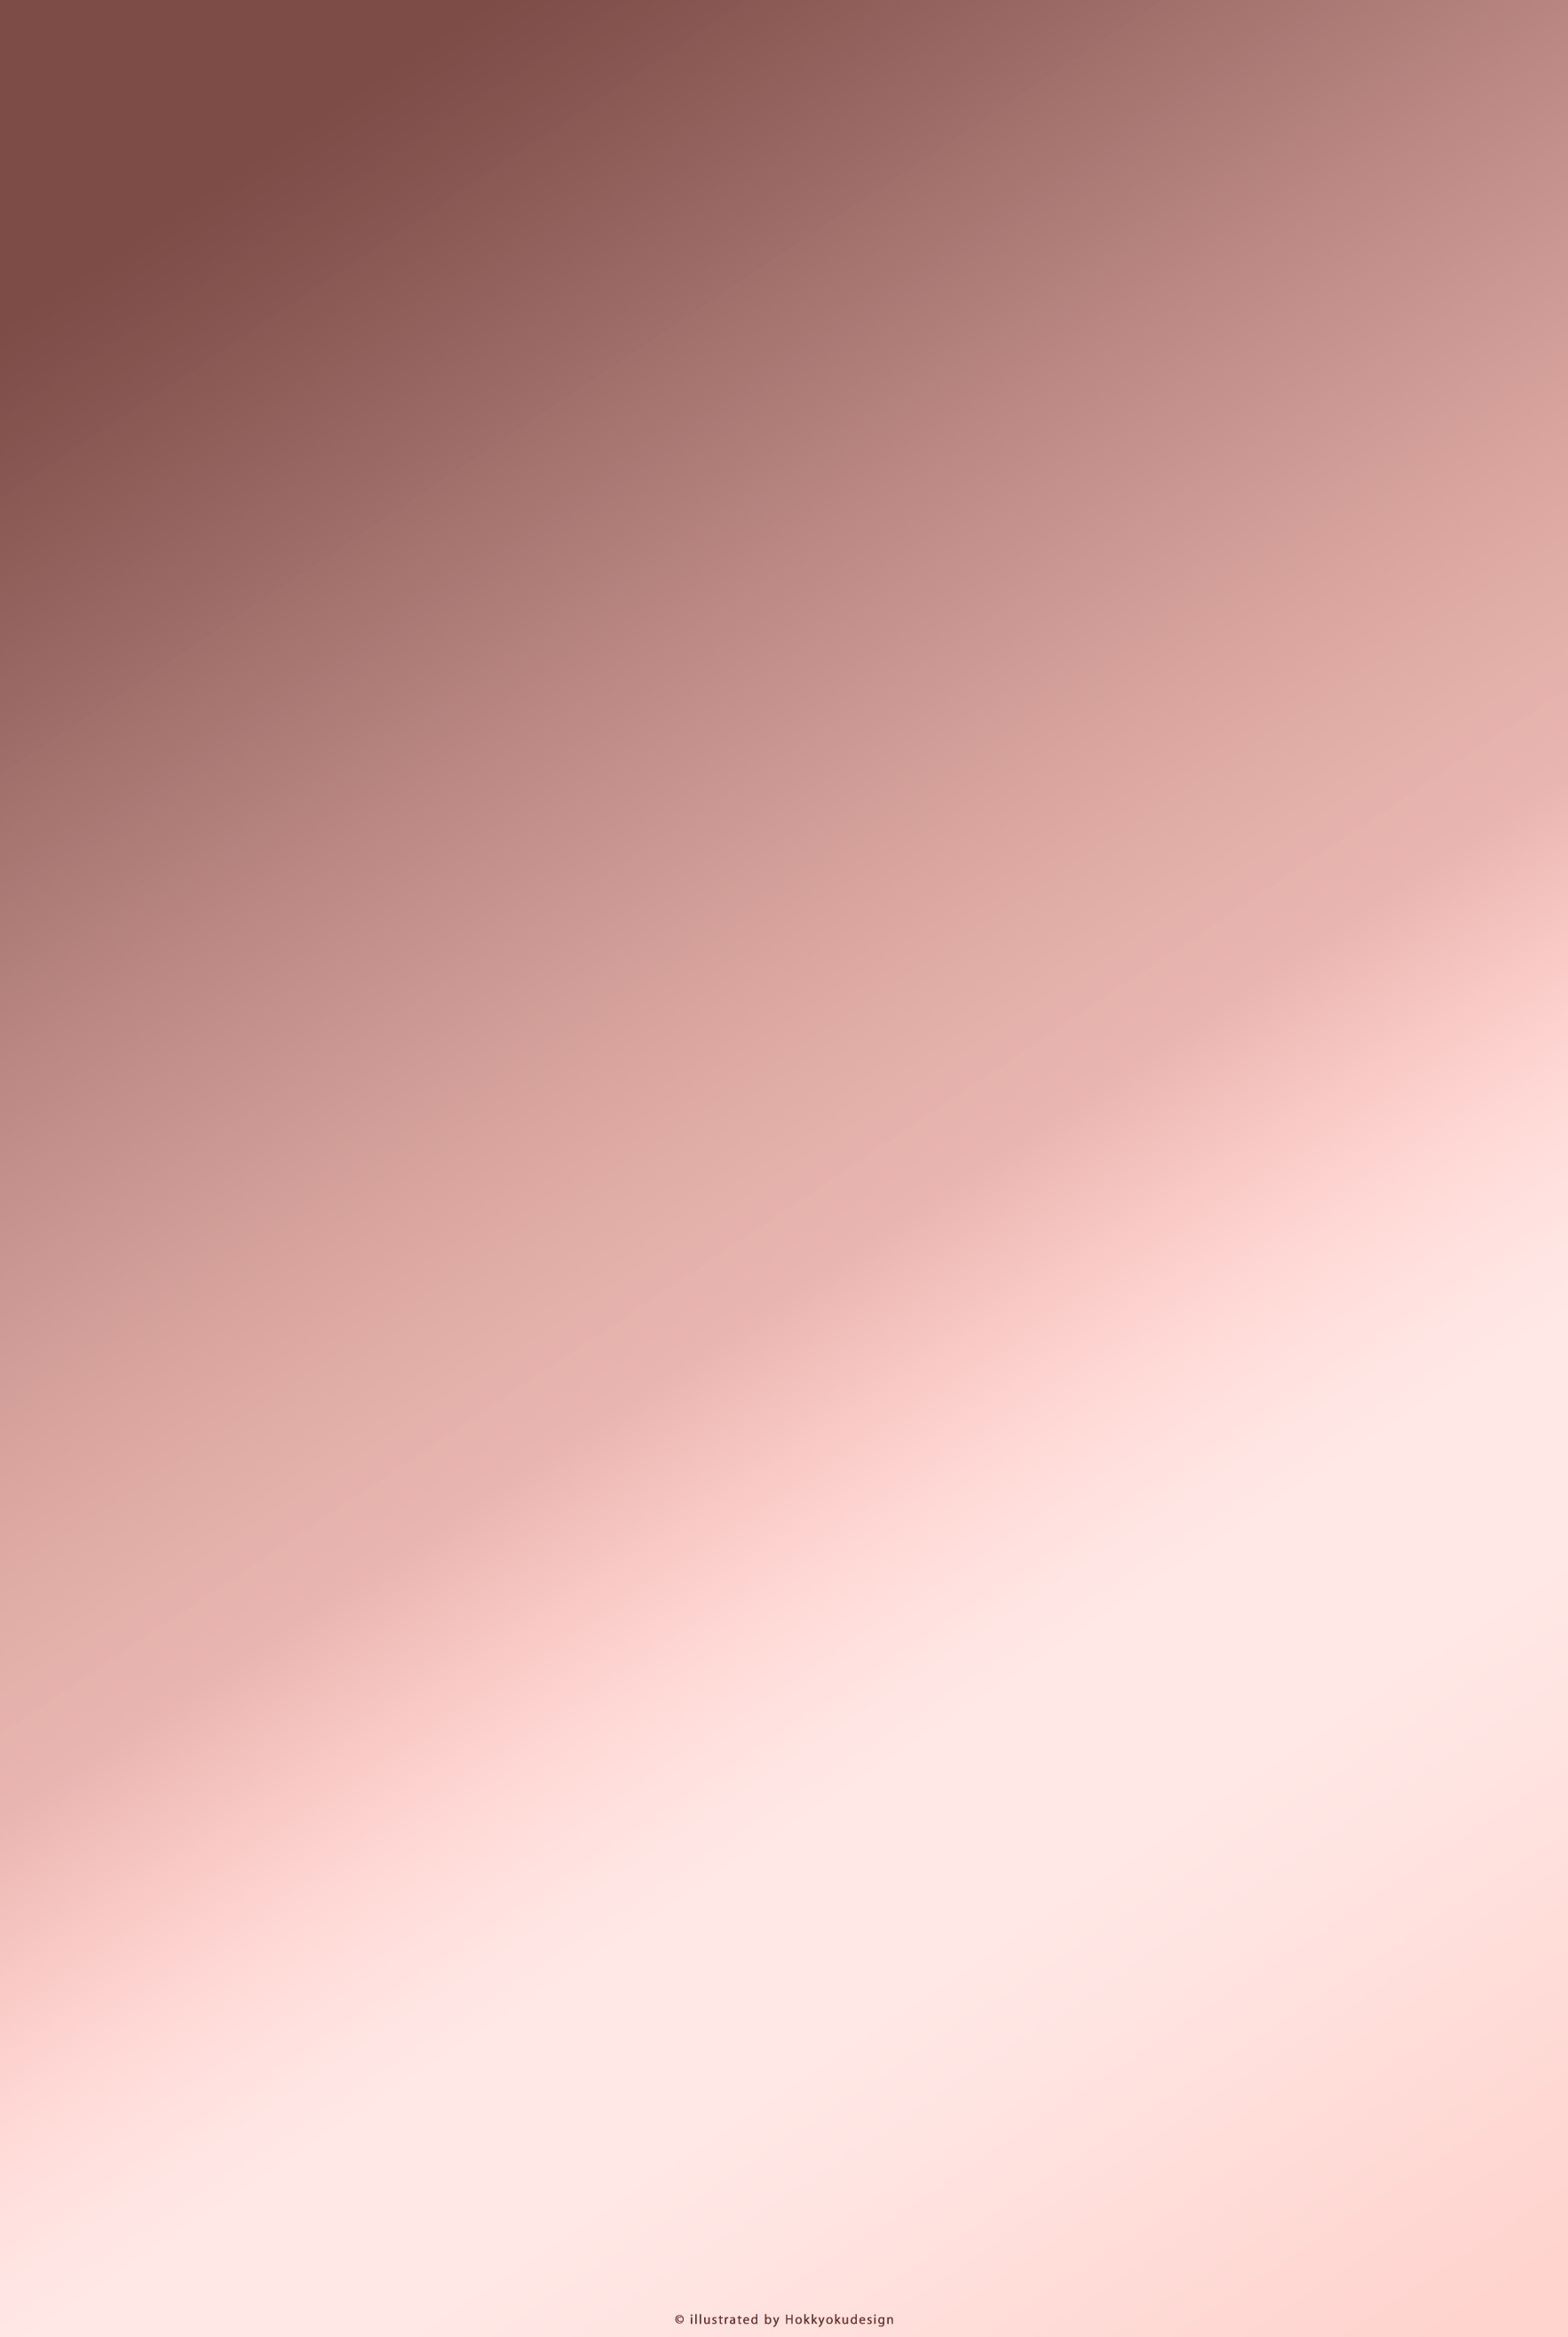 Res: 1766x2632, iPhoneiPadRose Gold Rose Gold wallpaper for All iPhone